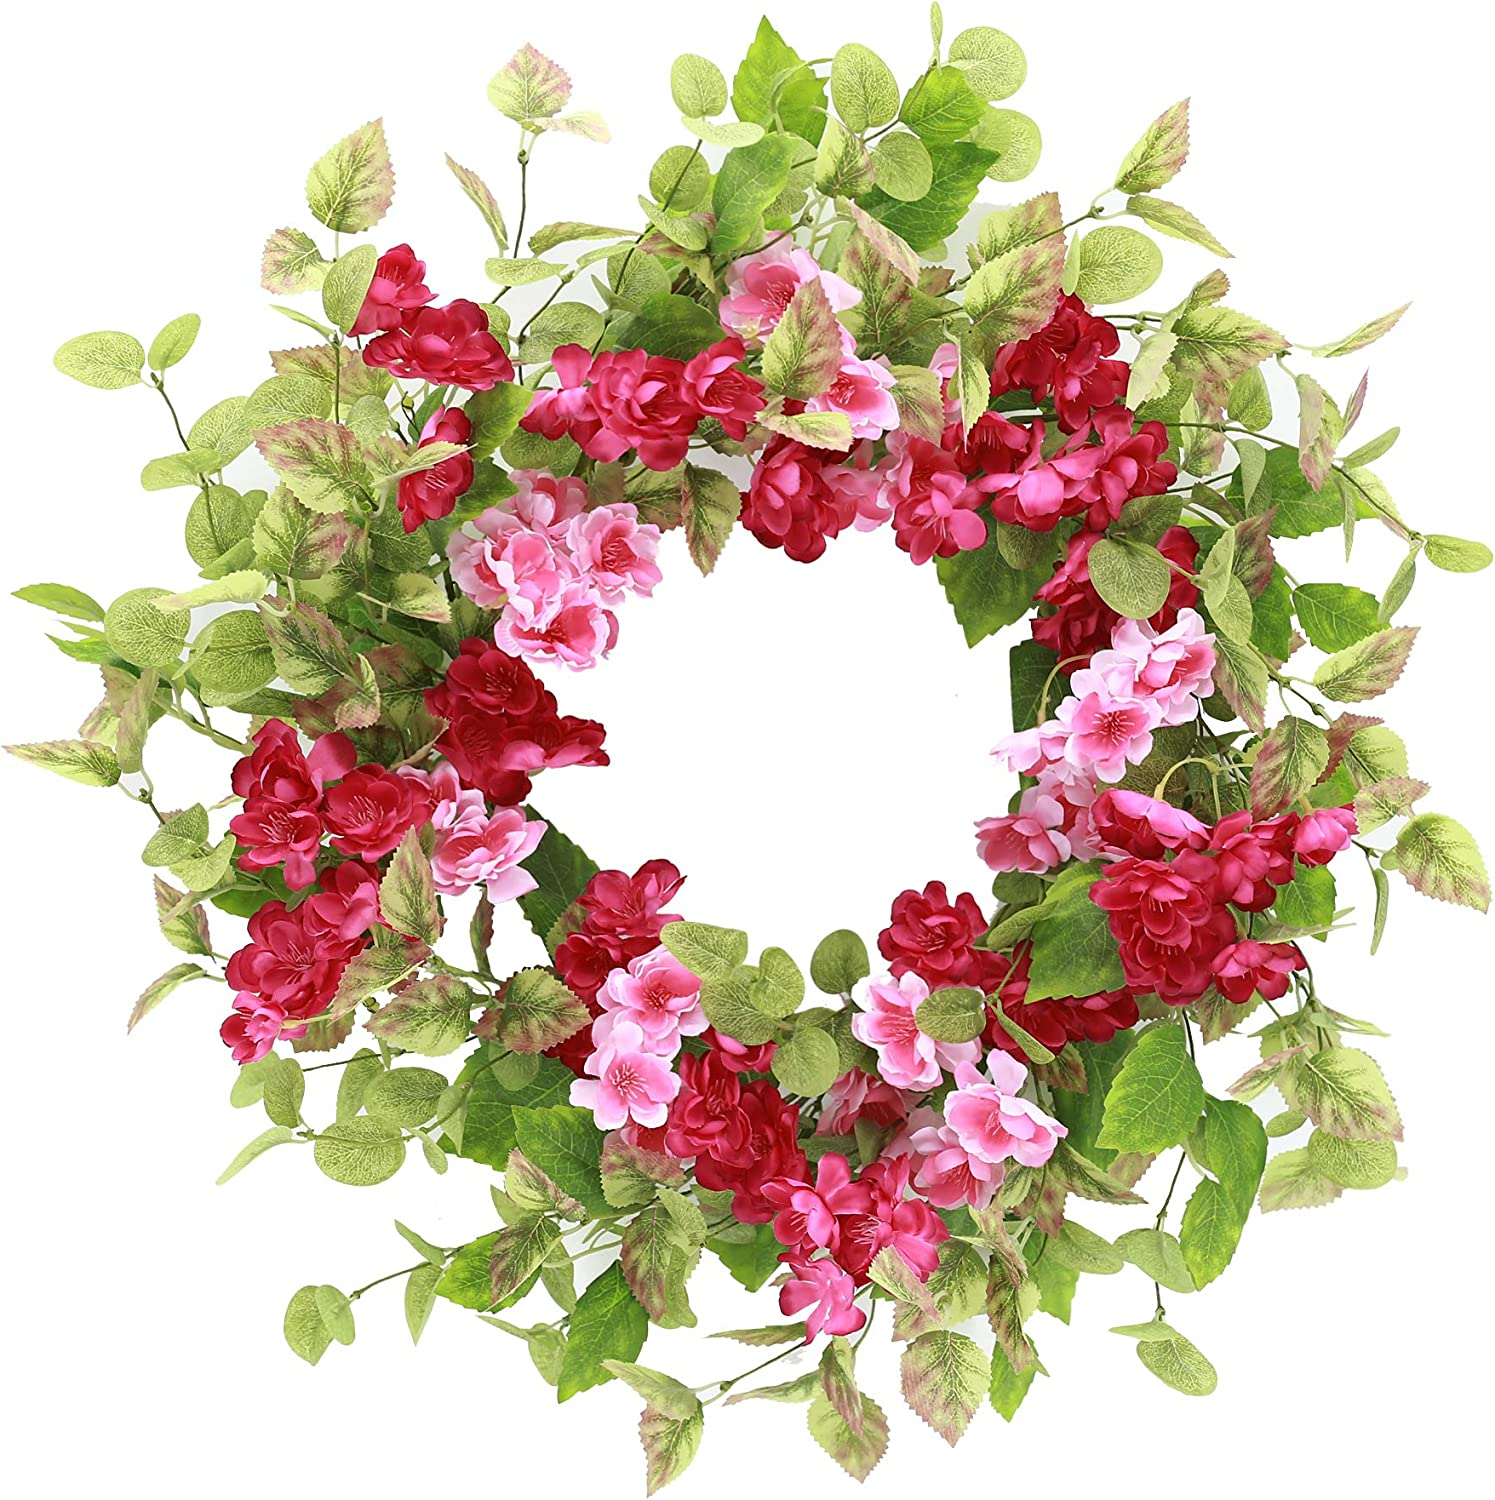 YNYLCHMX Spring Wreath for Front Door Eucalyptus Cherry Blossom Floral Wreath for Wedding Party Wall Window Home Decor, Pink Red, 18